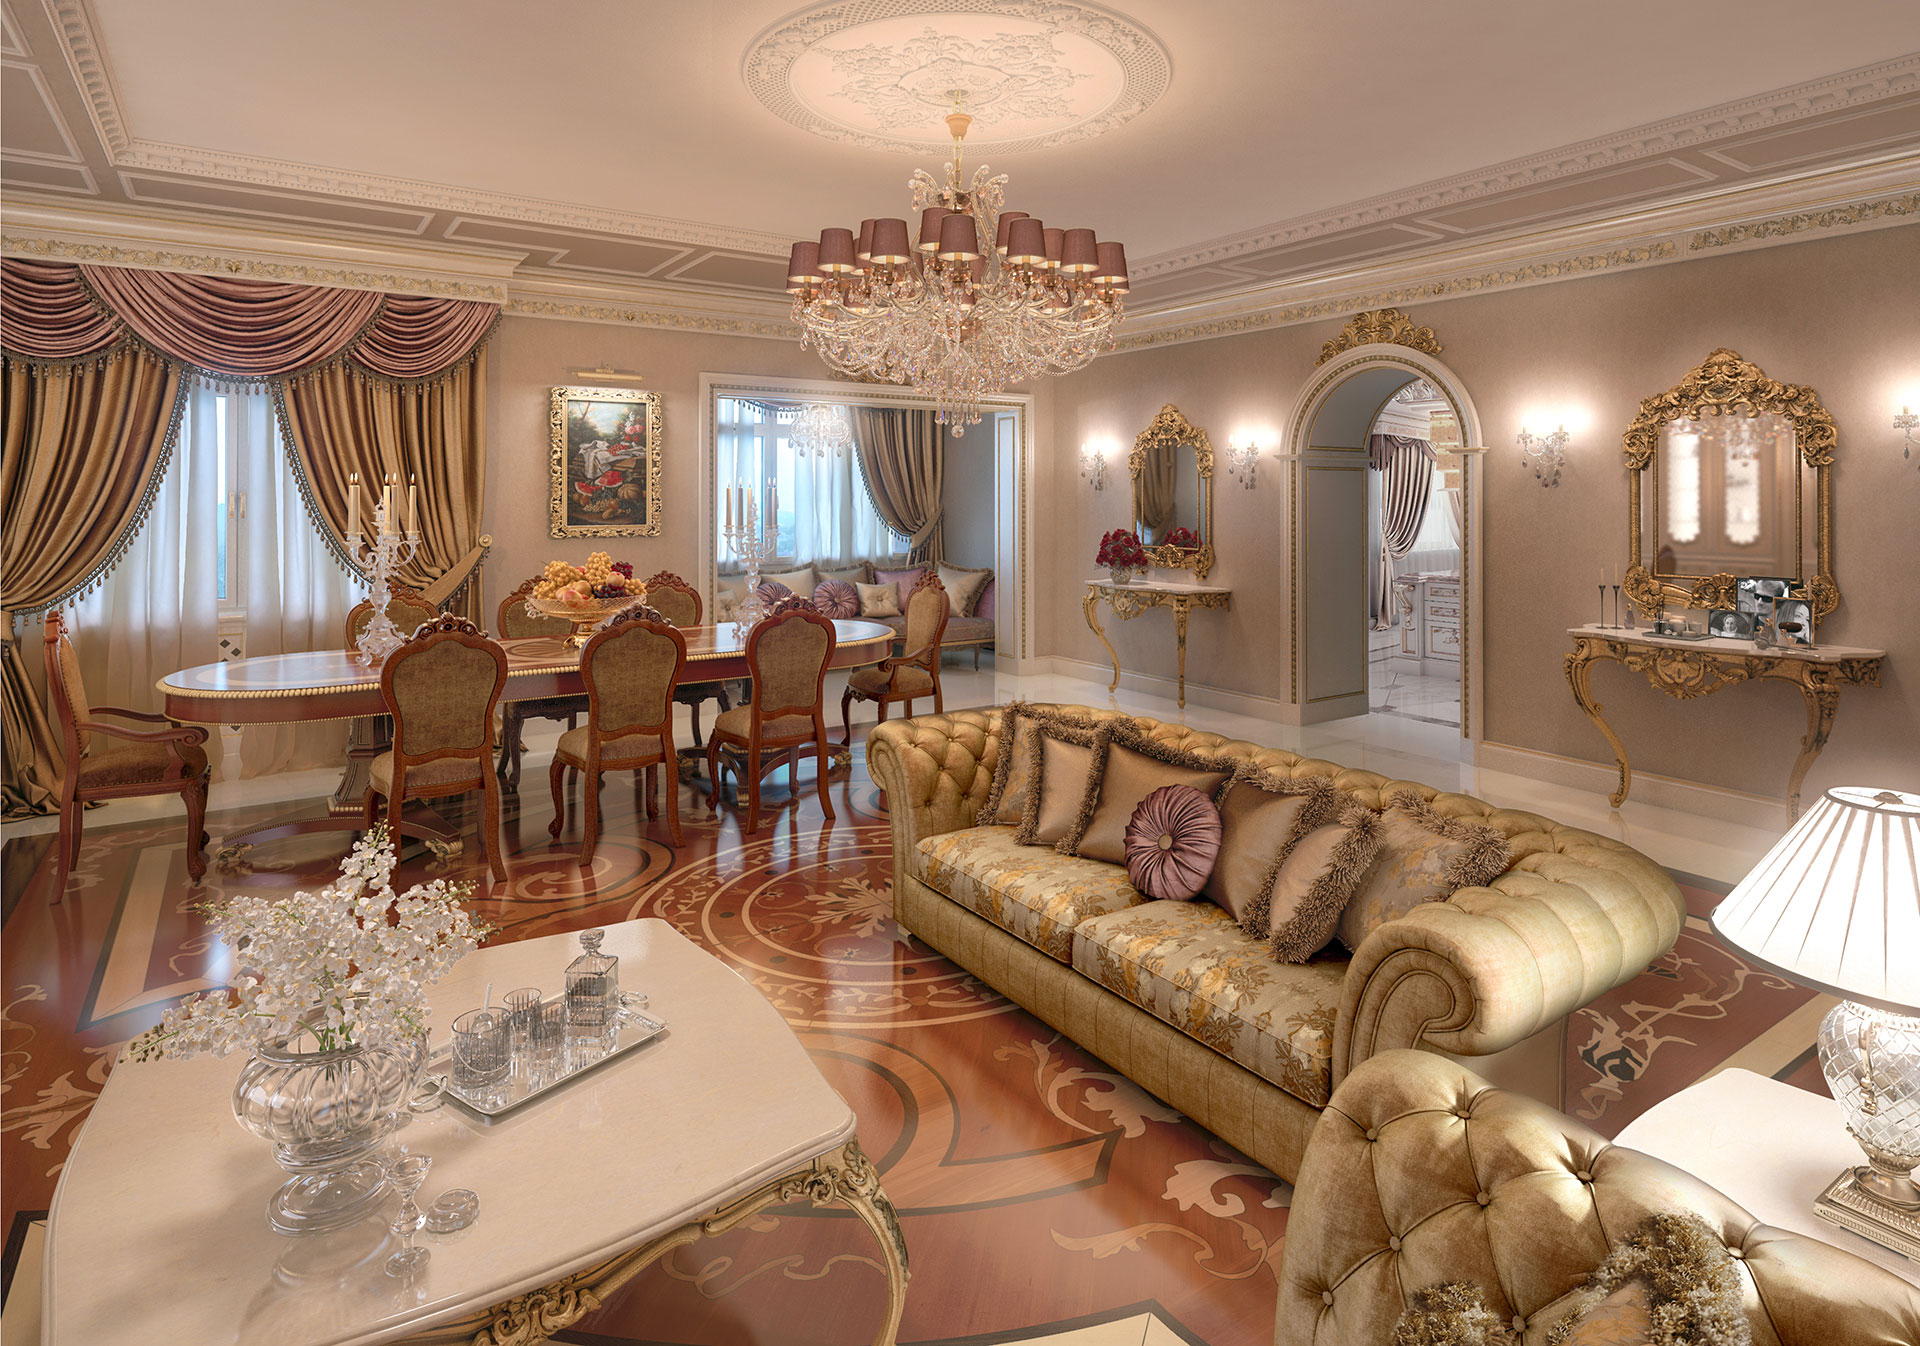 Faoma bespoke living room in classic style